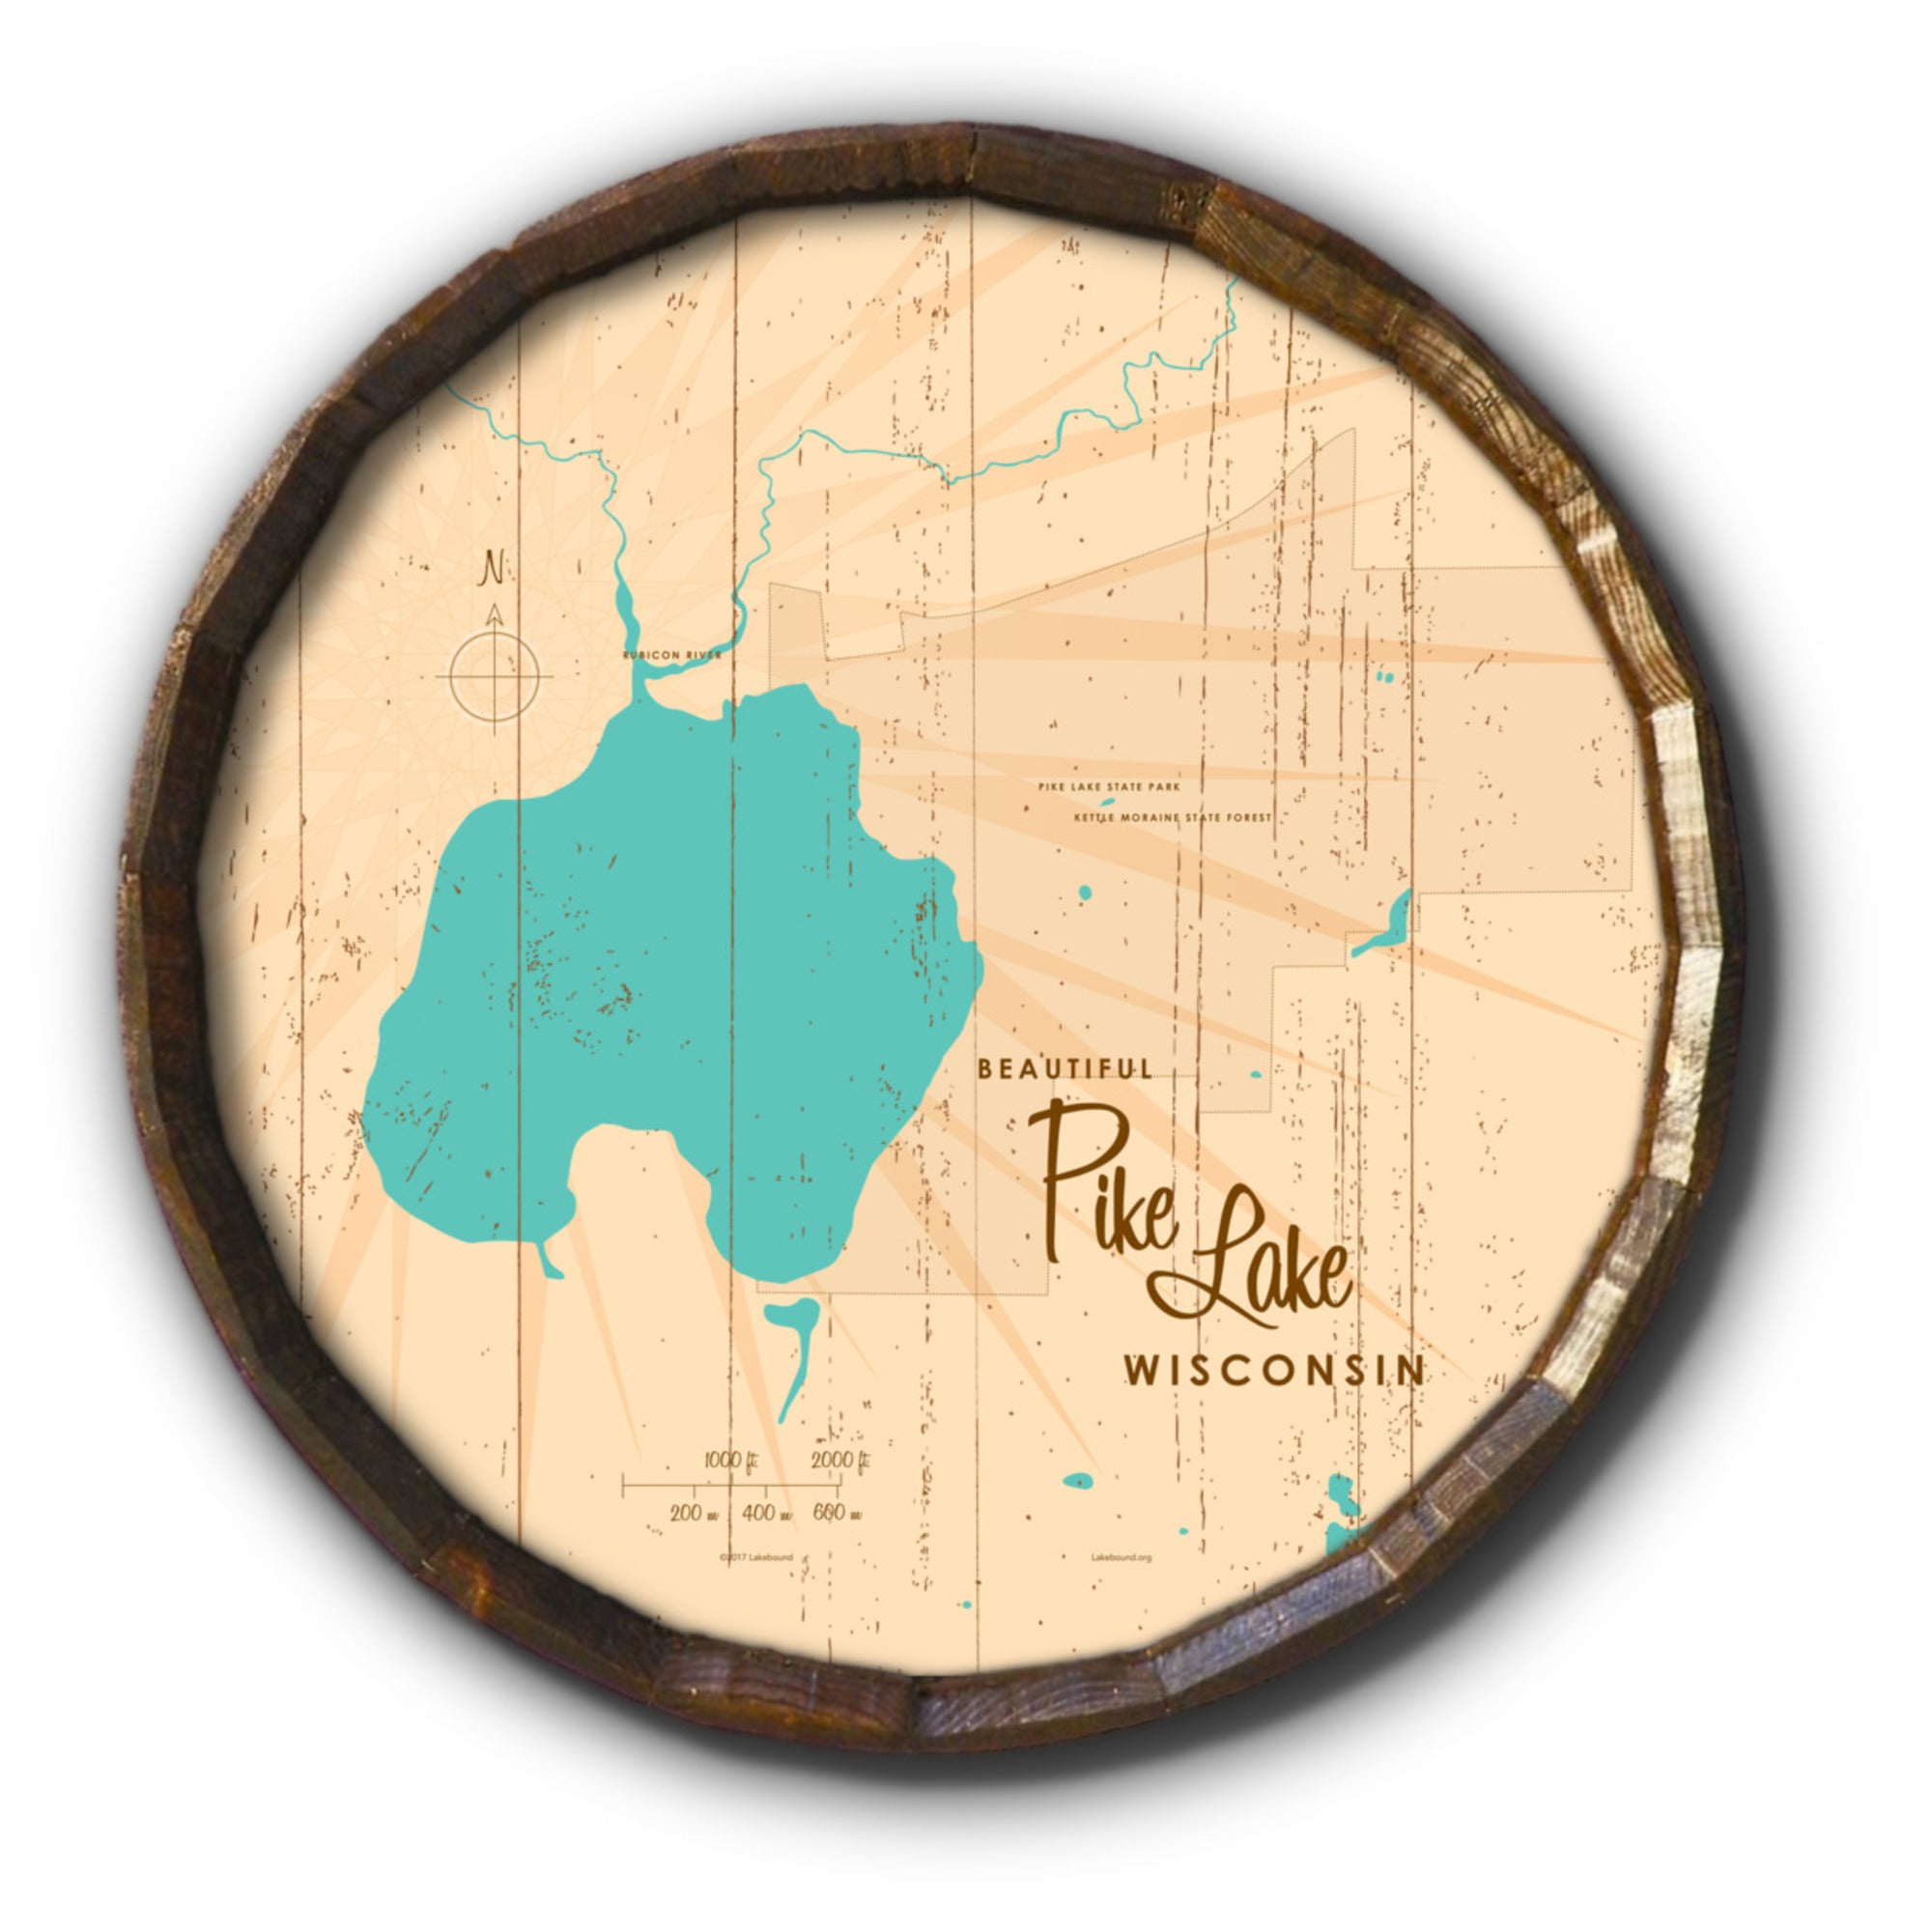 Pike Lake , Rustic Barrel End Map Art